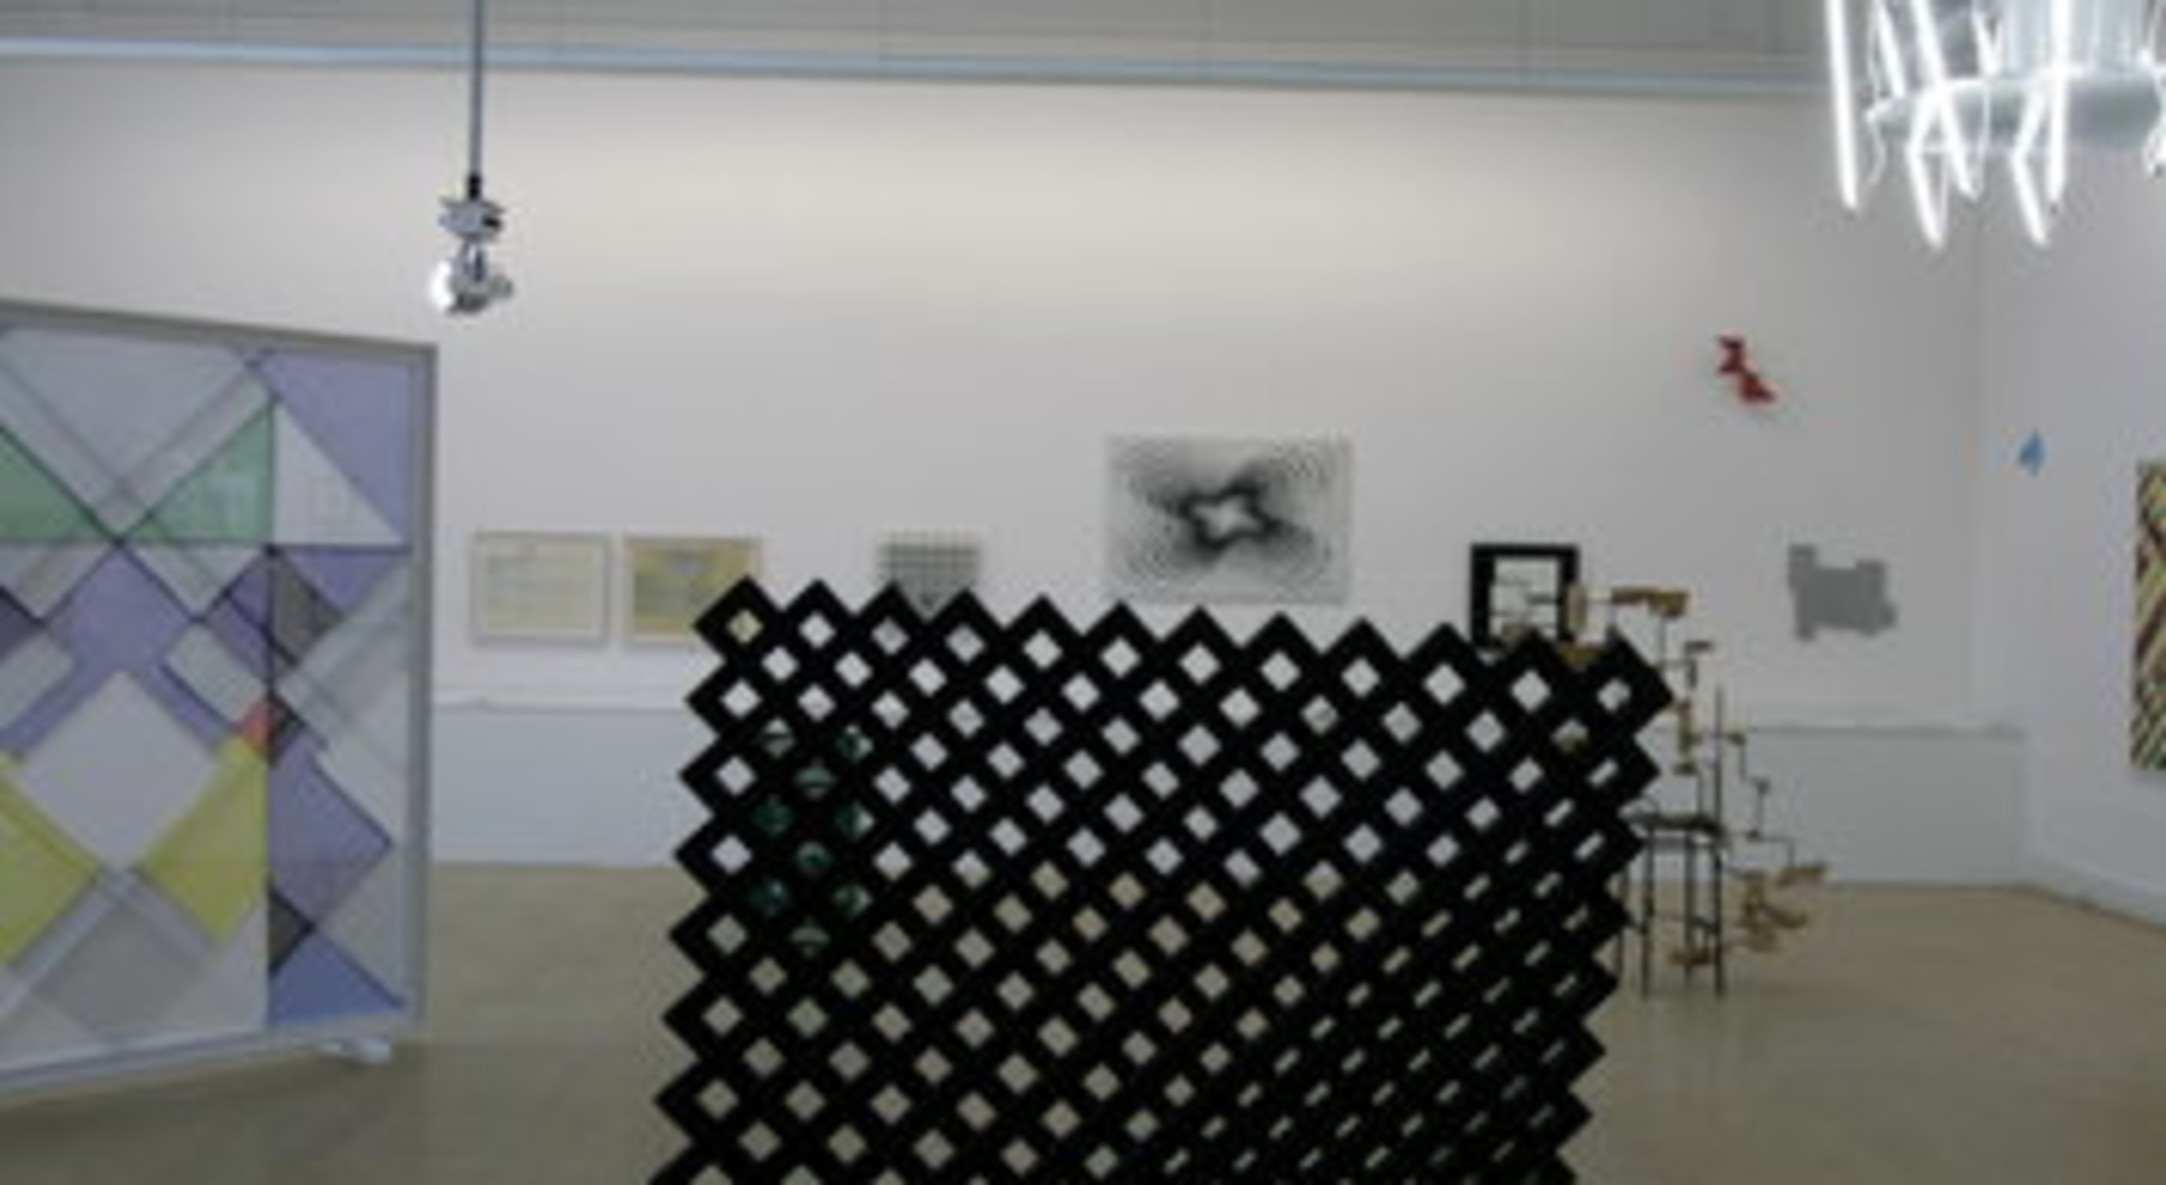 Installation view of Construction & its Shadow curated by Andrew Bick at Leeds Art Gallery